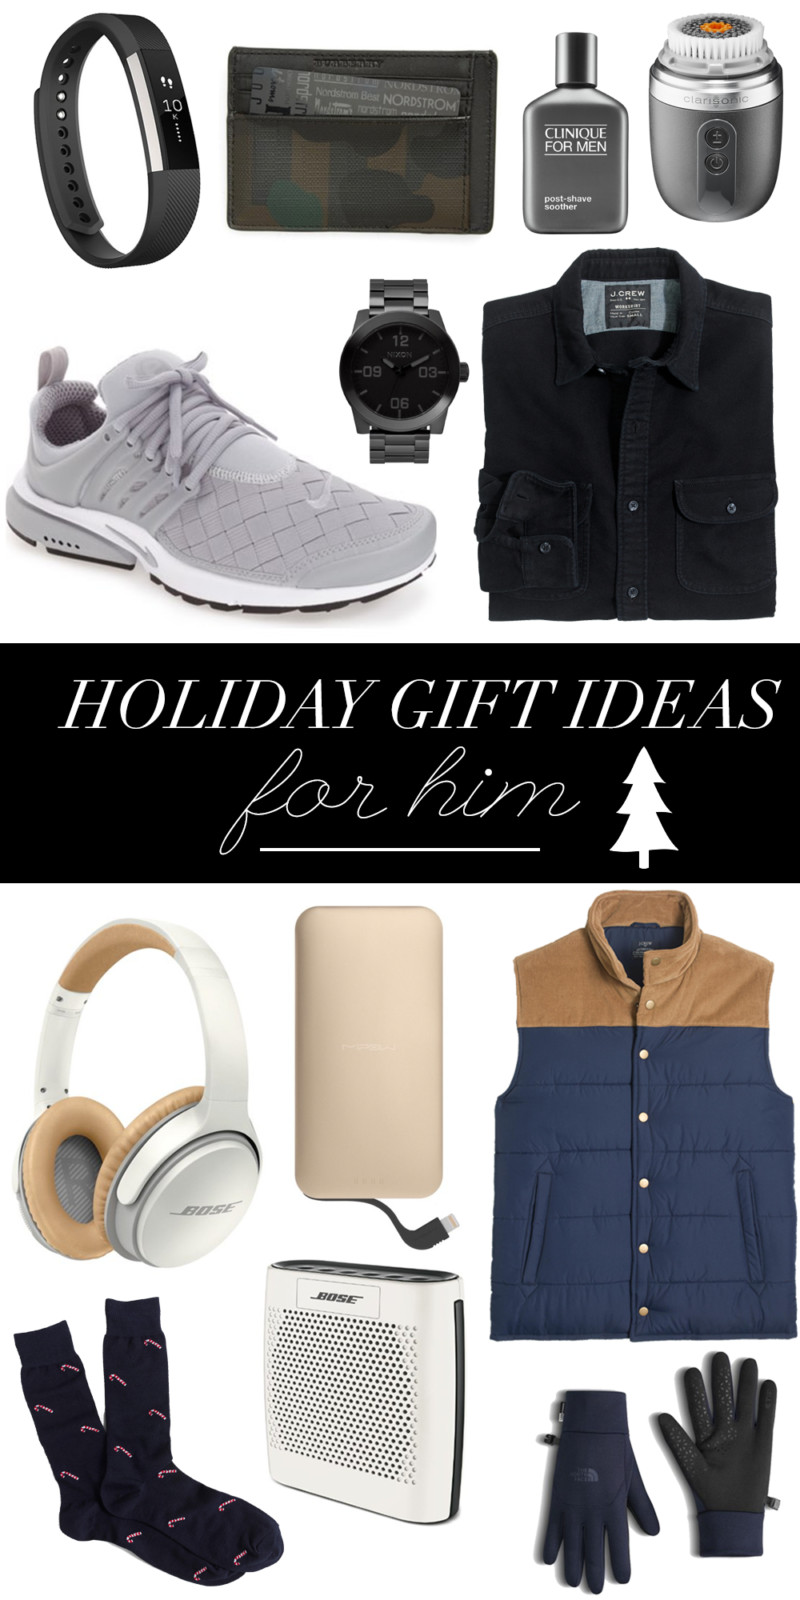 Best ideas about Holiday Gift Ideas For Him . Save or Pin Holiday Gift Ideas For Him Money Can Buy Lipstick Now.